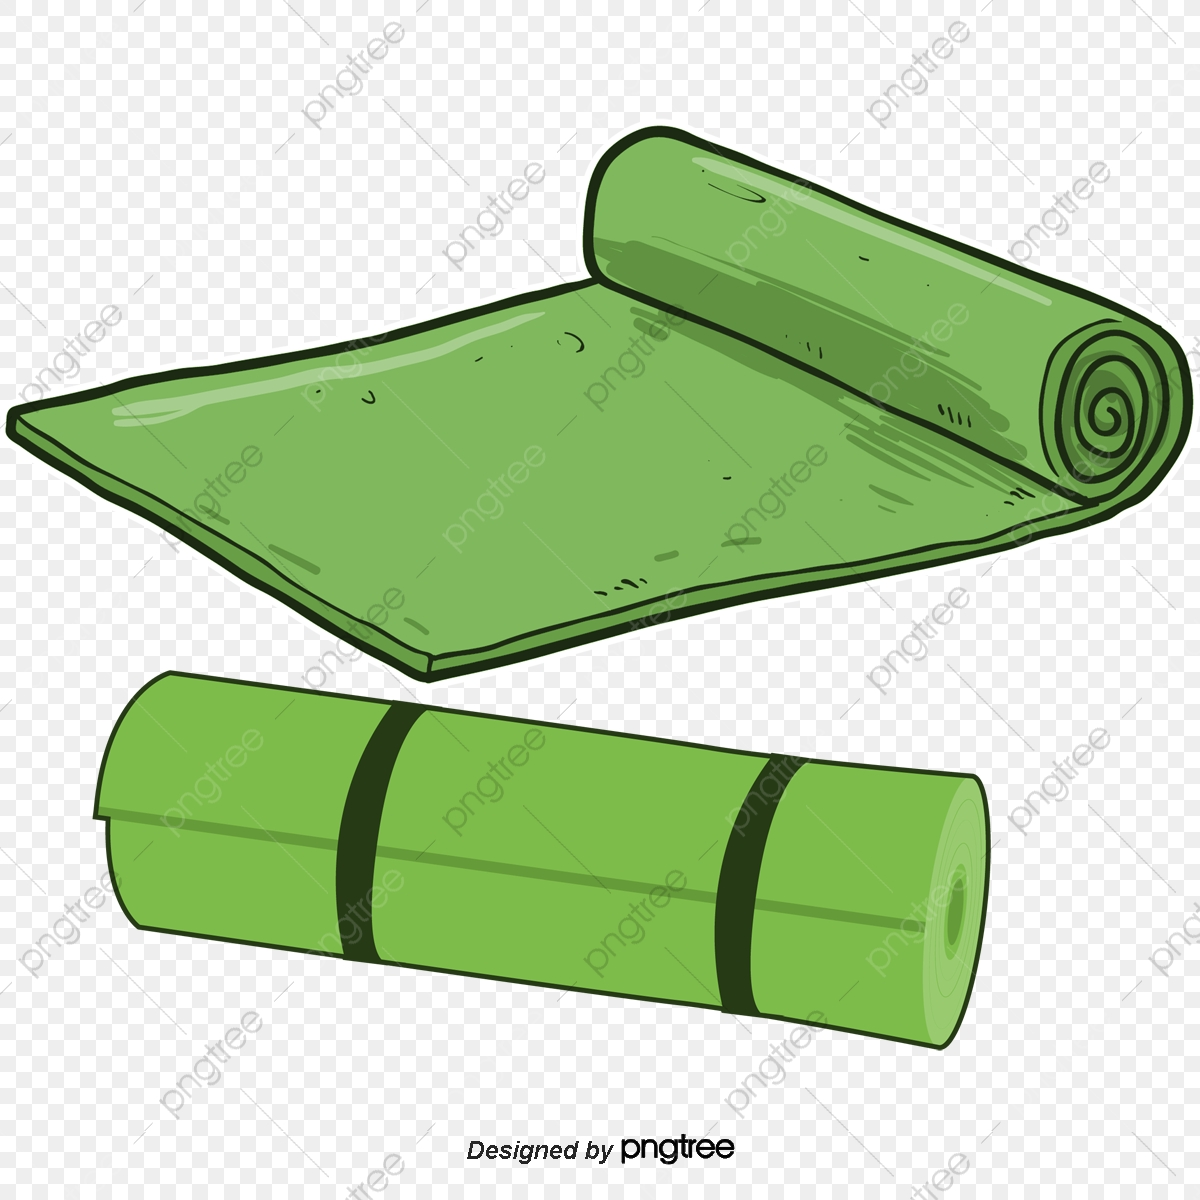 Light Green Yoga Mat Slimming Yoga Plastic Mats Png Transparent Clipart Image And Psd File For Free Download